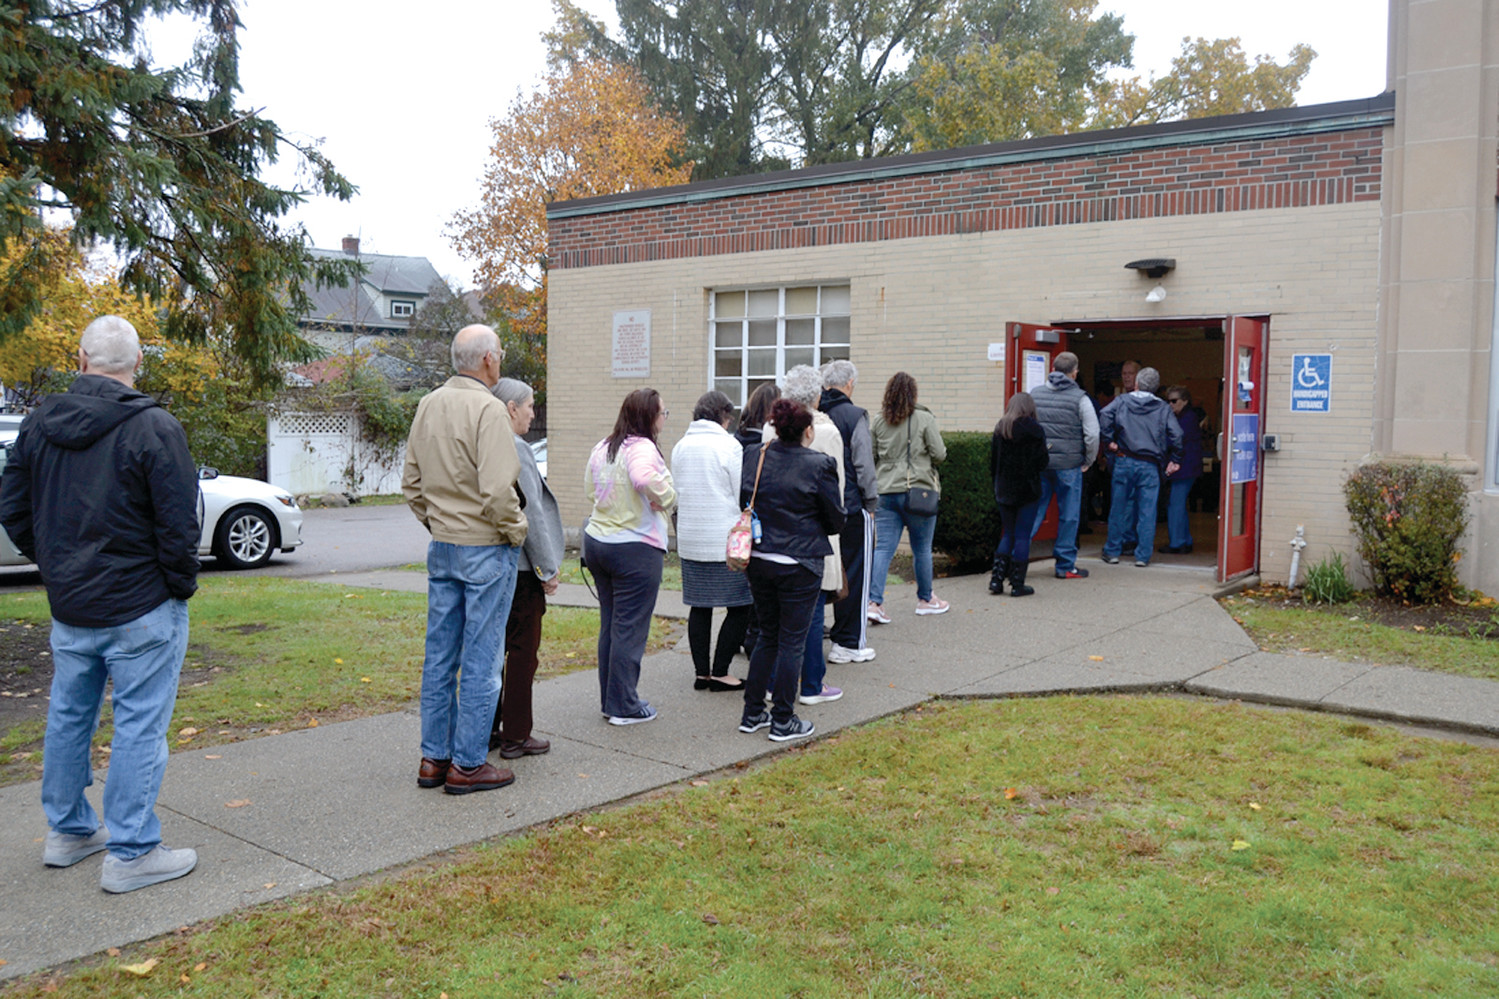 LONG LINE: Turnout was high at the Graniteville School, where voters saw long lines throughout the morning.